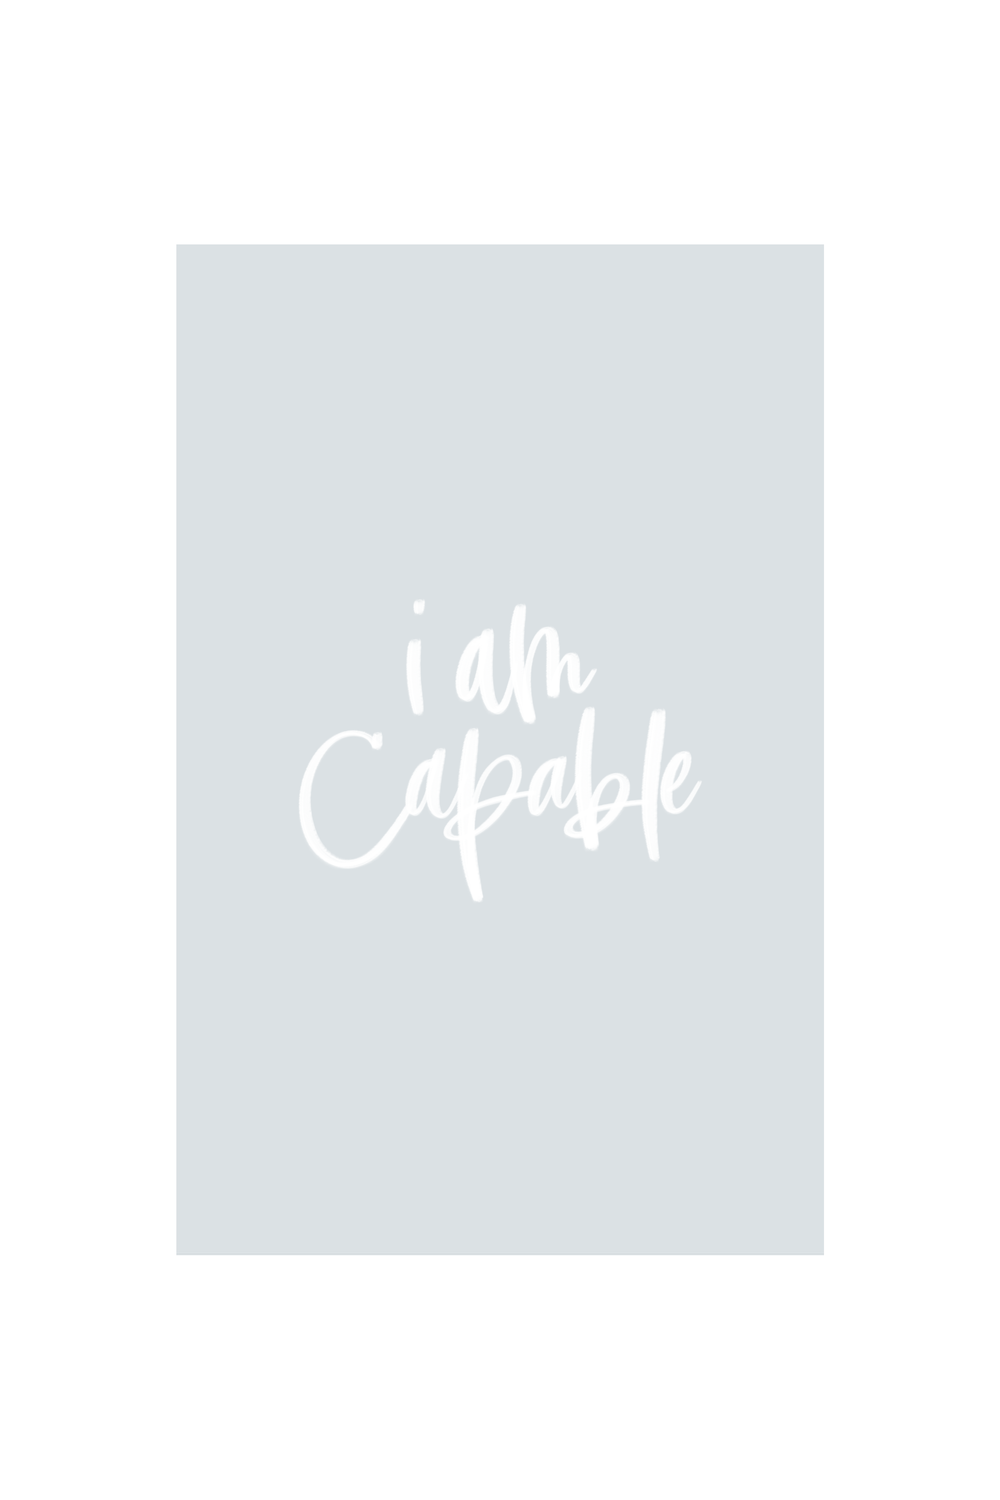 Downloadable Phone Backgrounds | Jennifer Diaz | Hand Lettering by Amy May Paper | I Am Capable